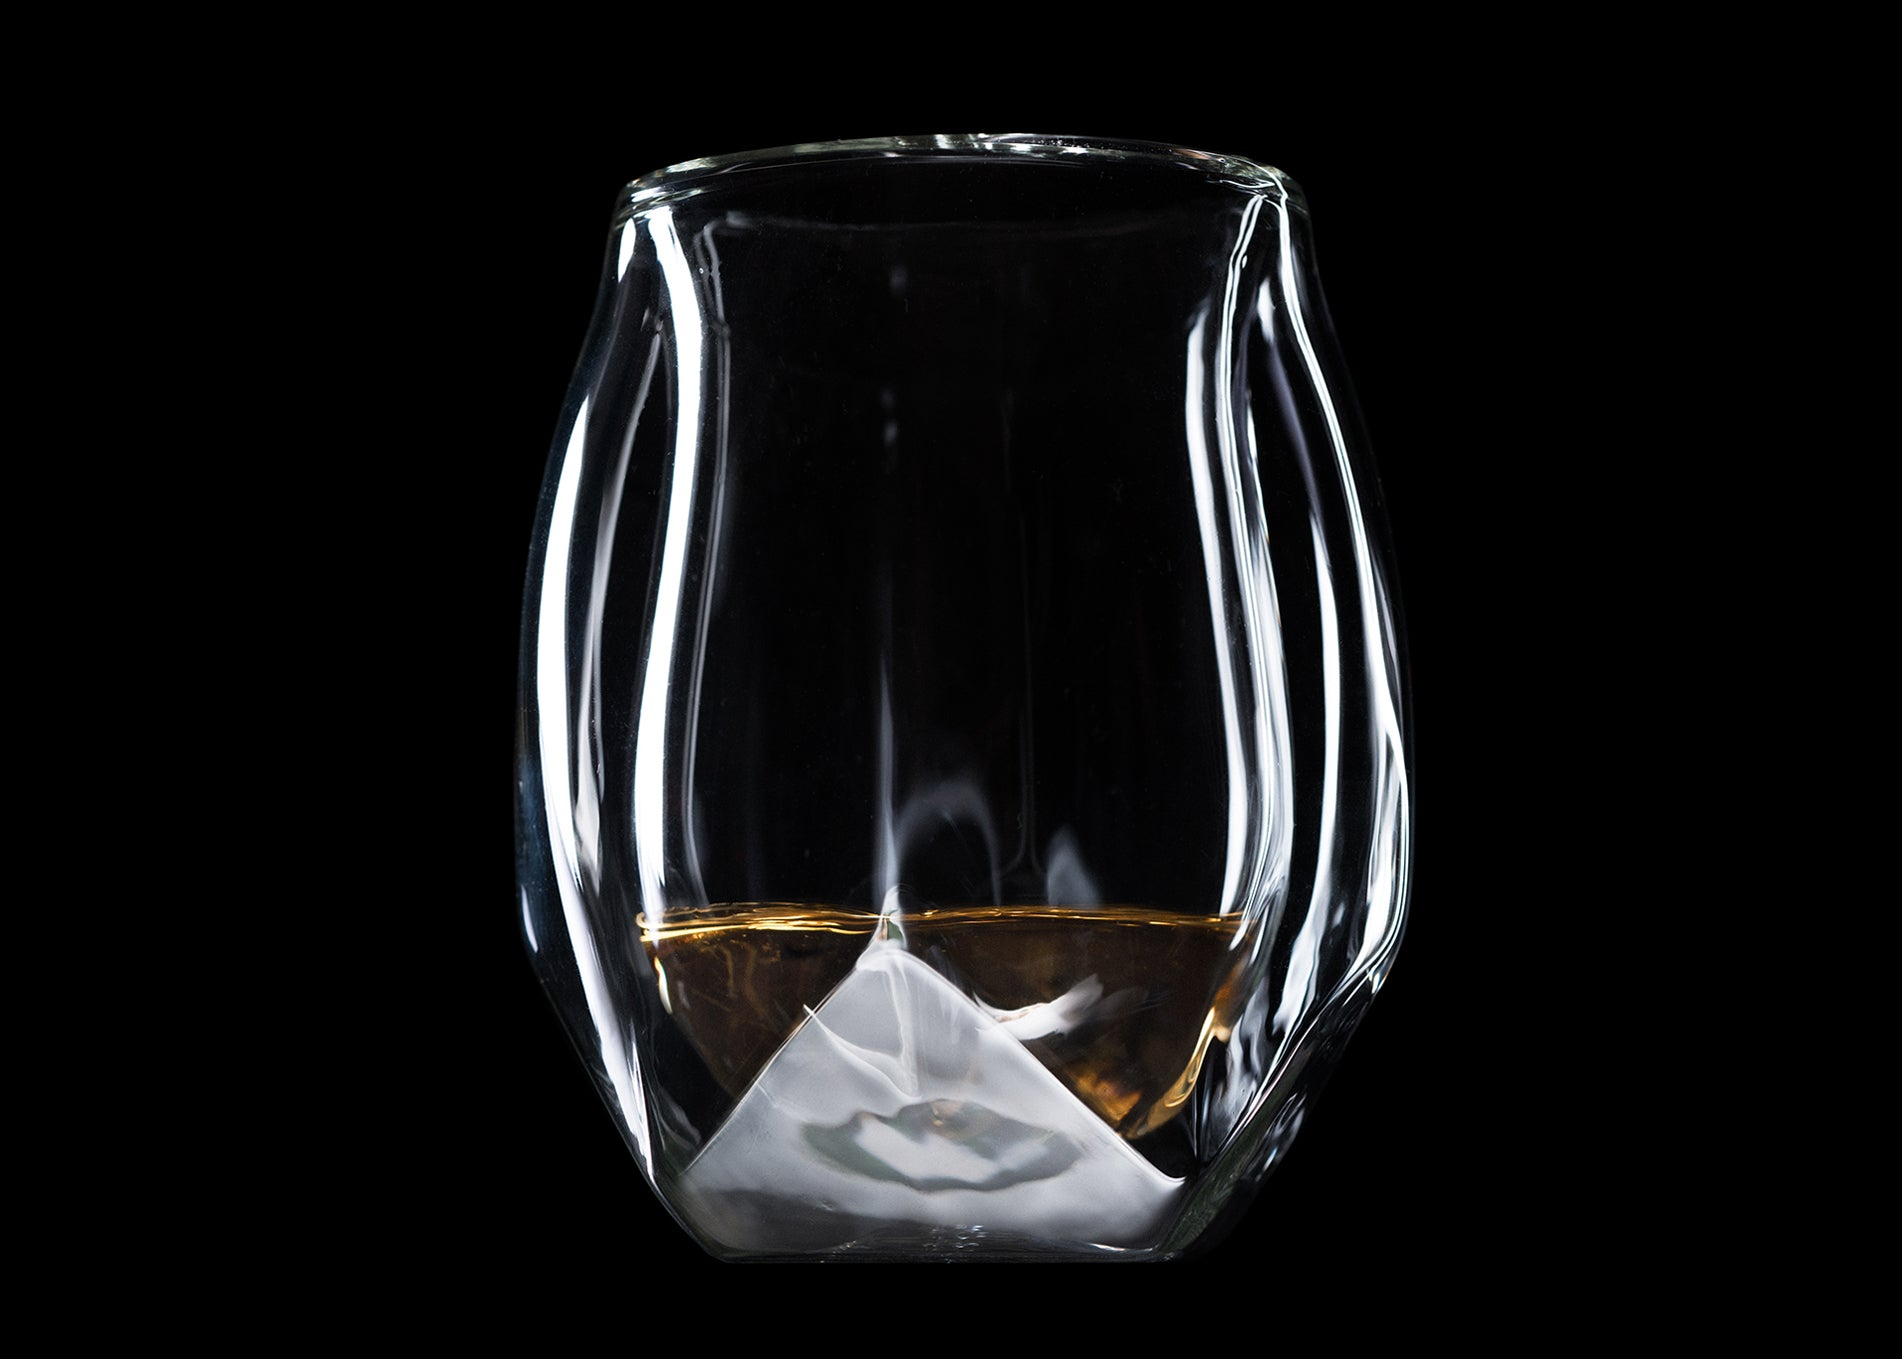 Norlan Whisky Glass,microfiber polishing cloth included Set of 2